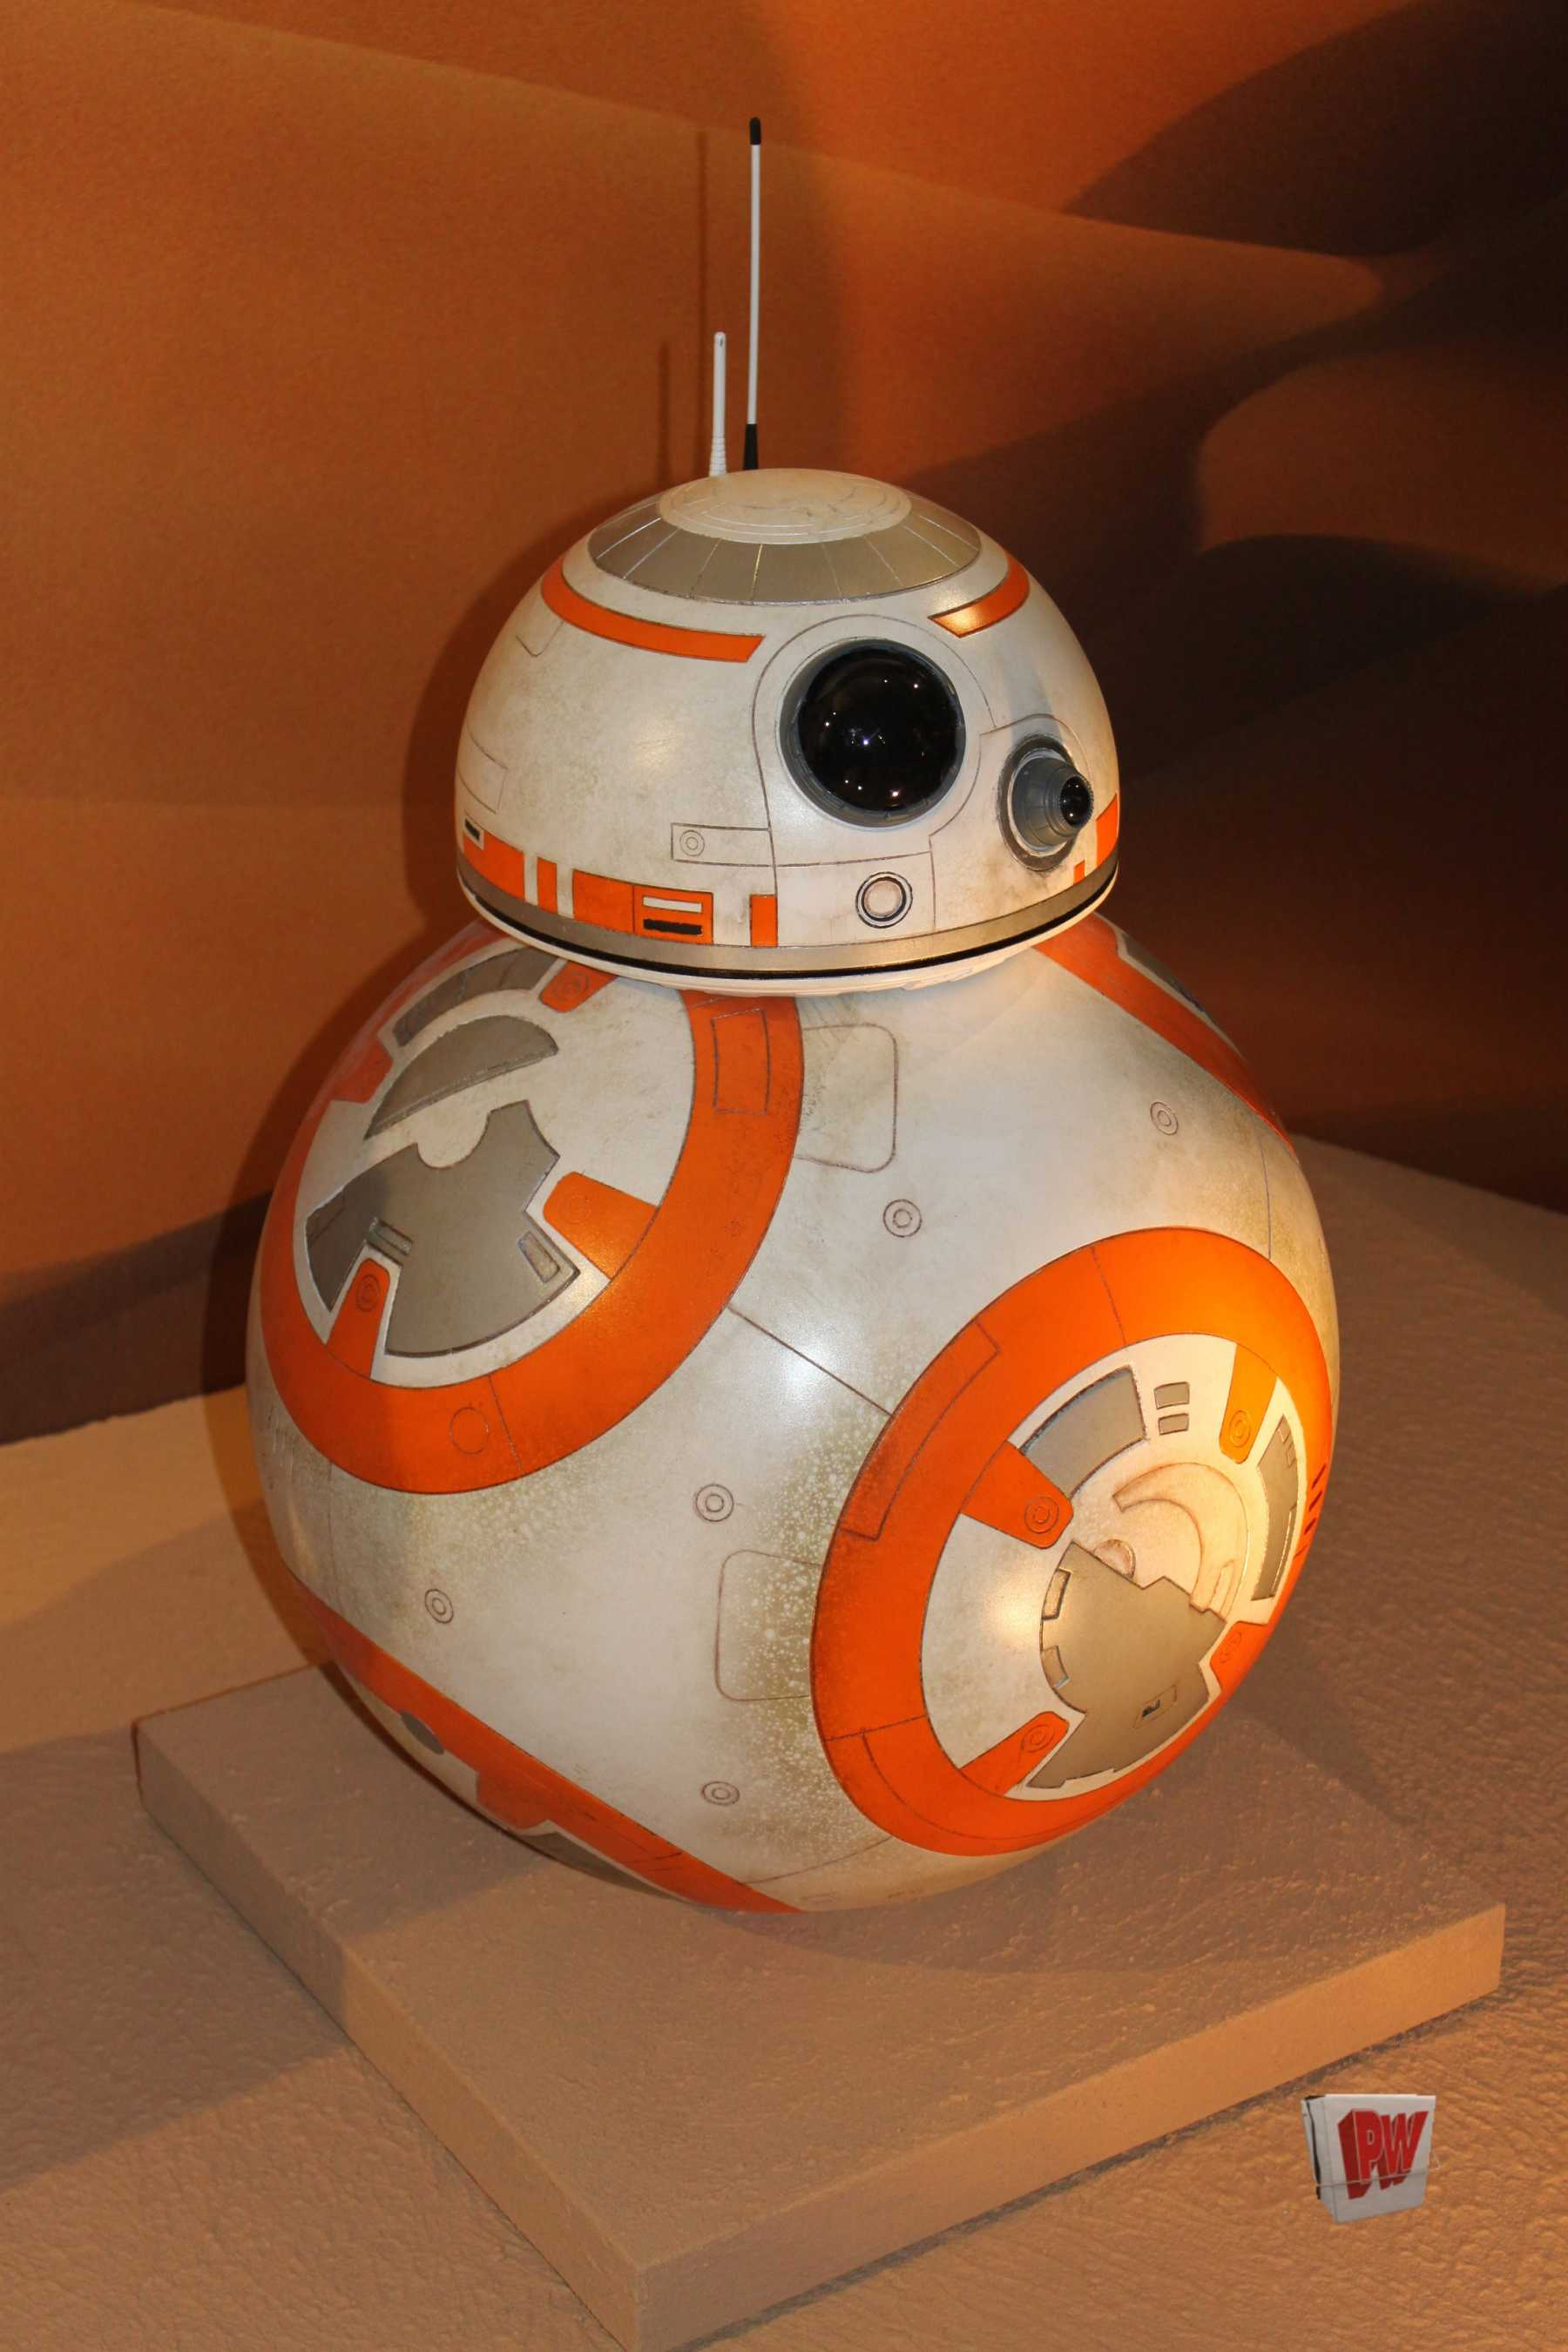 The 'Star Wars: The Force Awakens' Toronto Exhibit Is Stellar | The Force Awakens